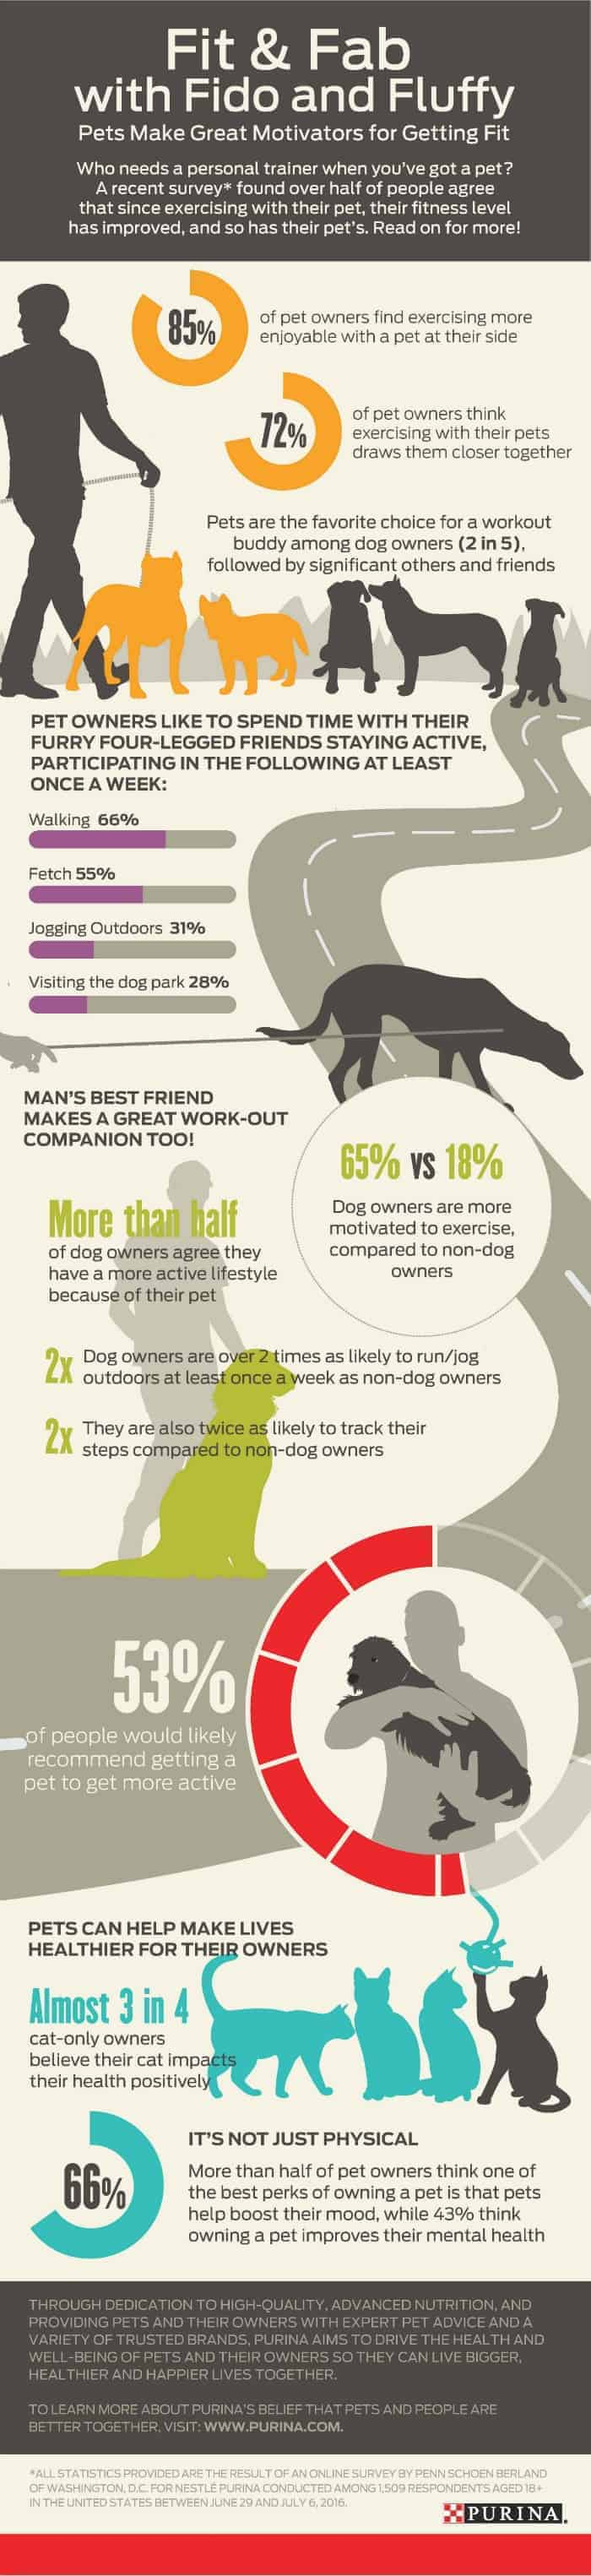 Purina Fitness with Pets Infographic